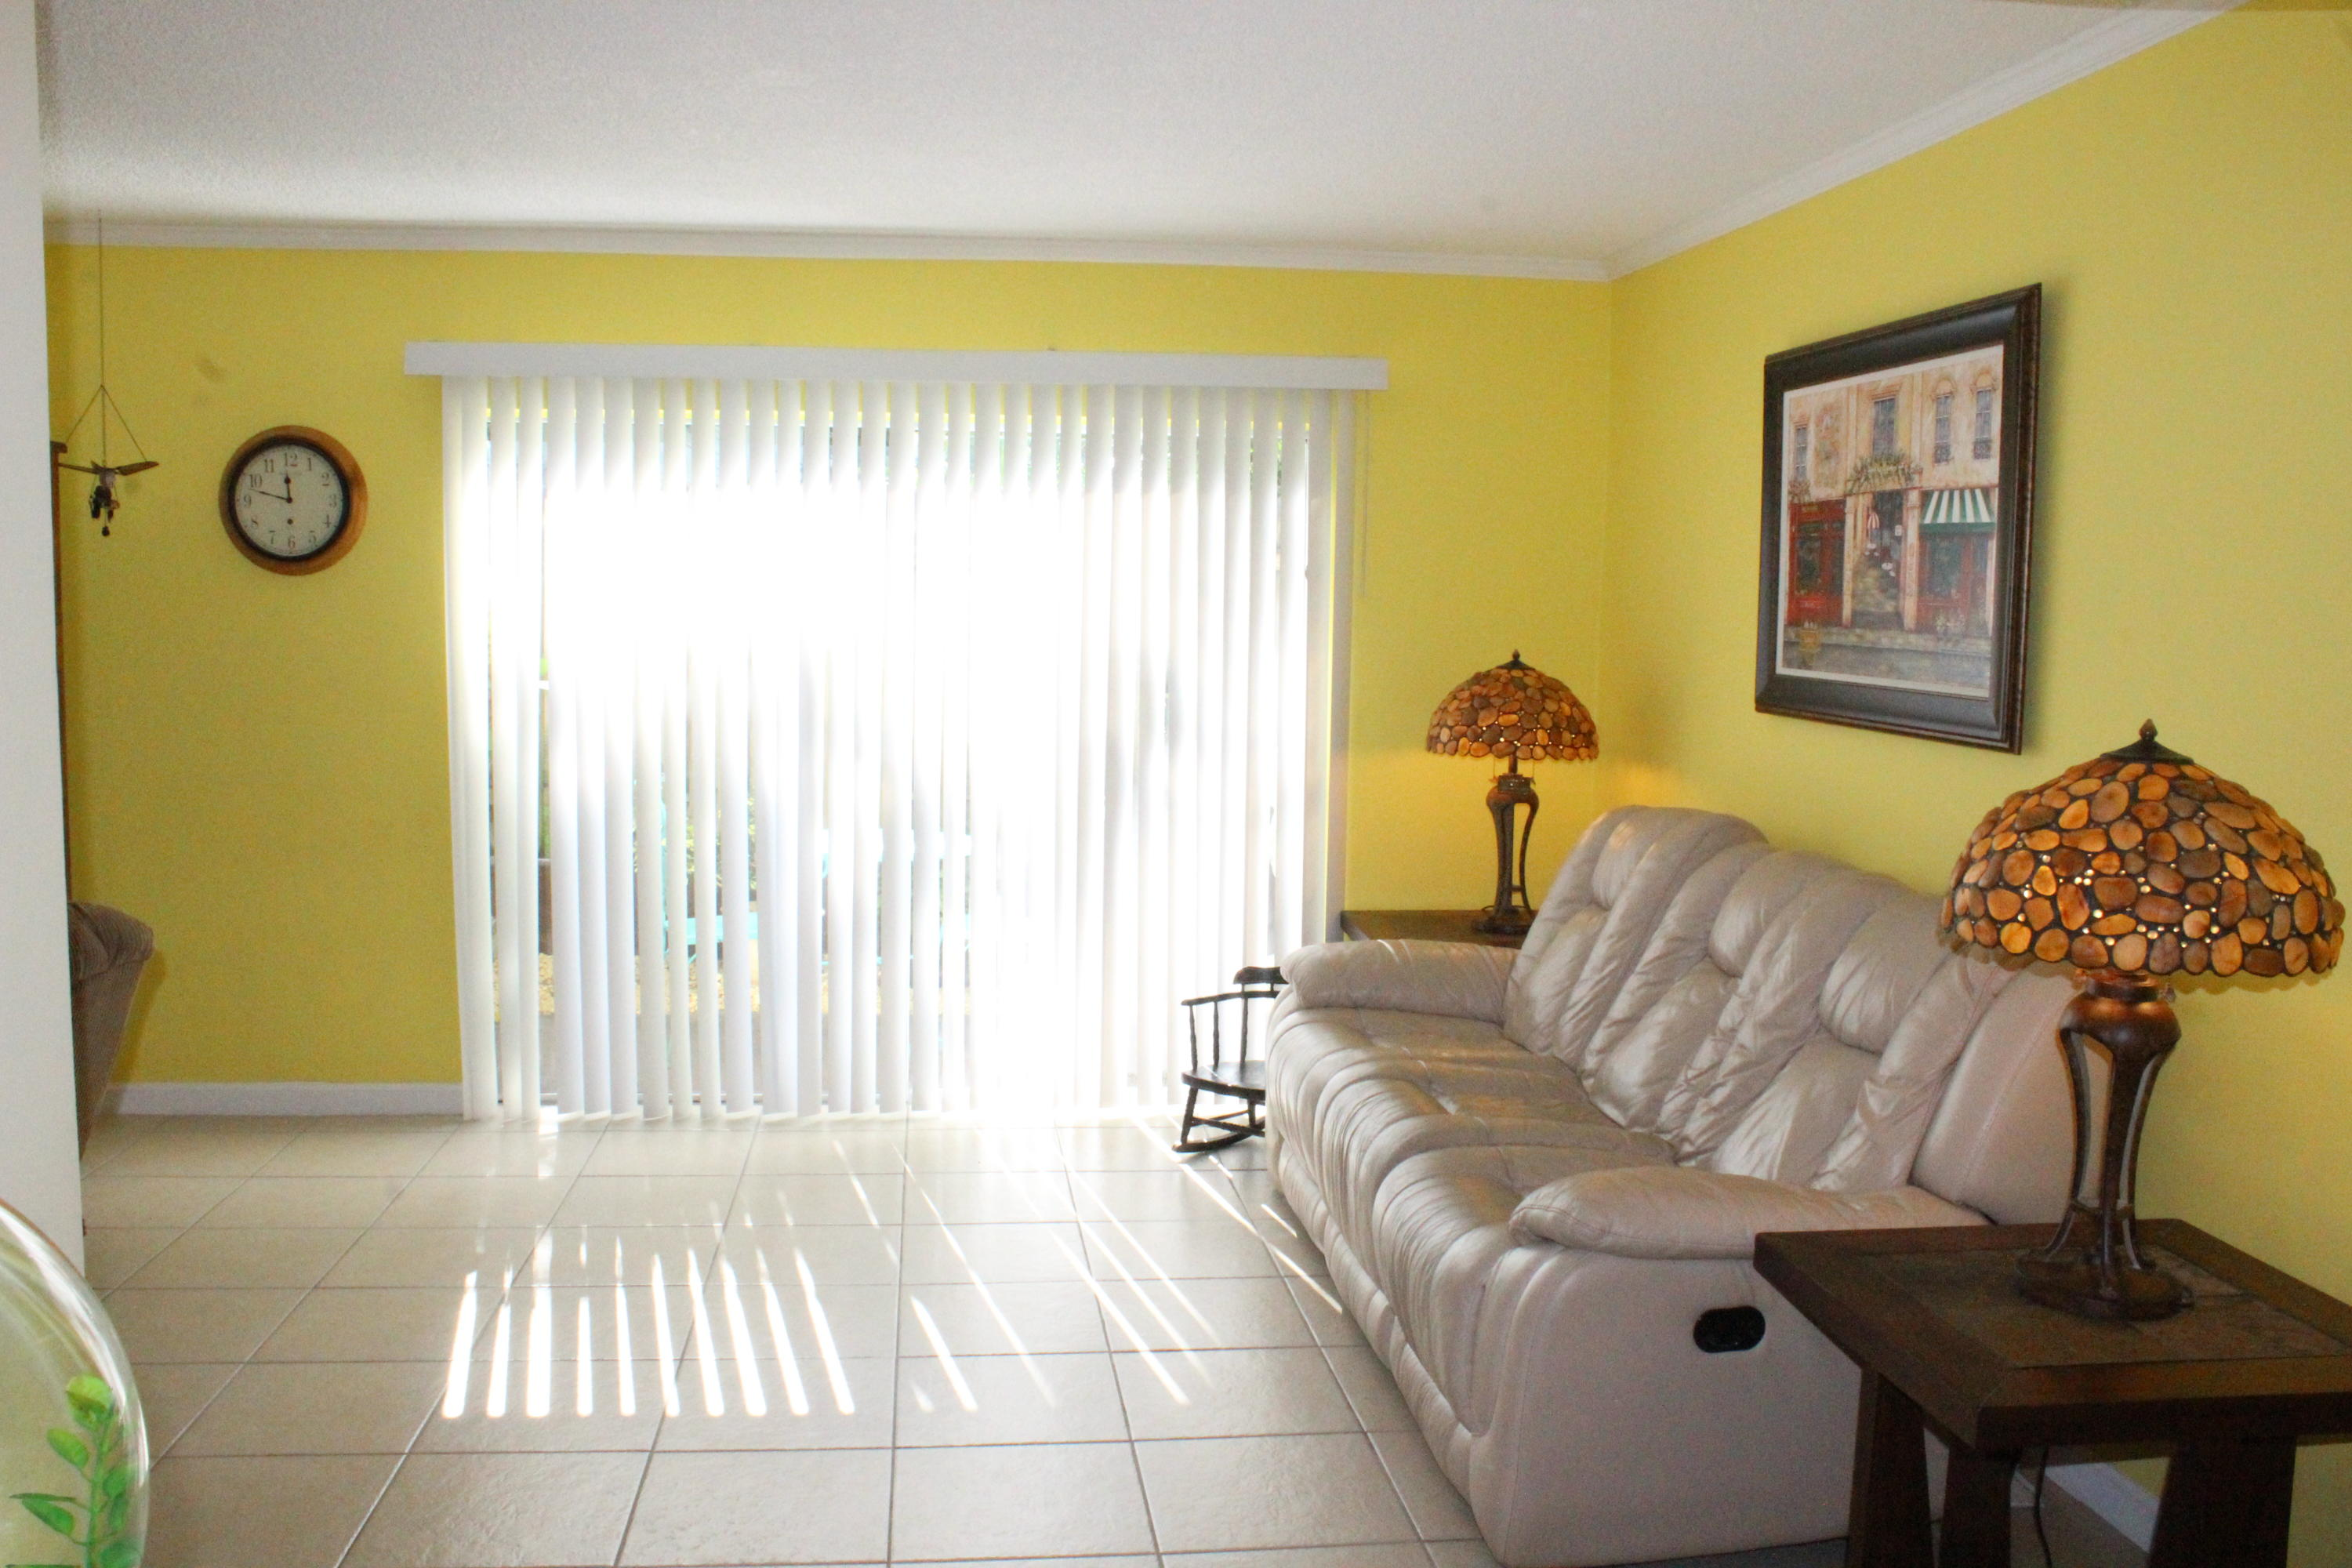 Home for sale in Racquet Club Wilton Manors Florida